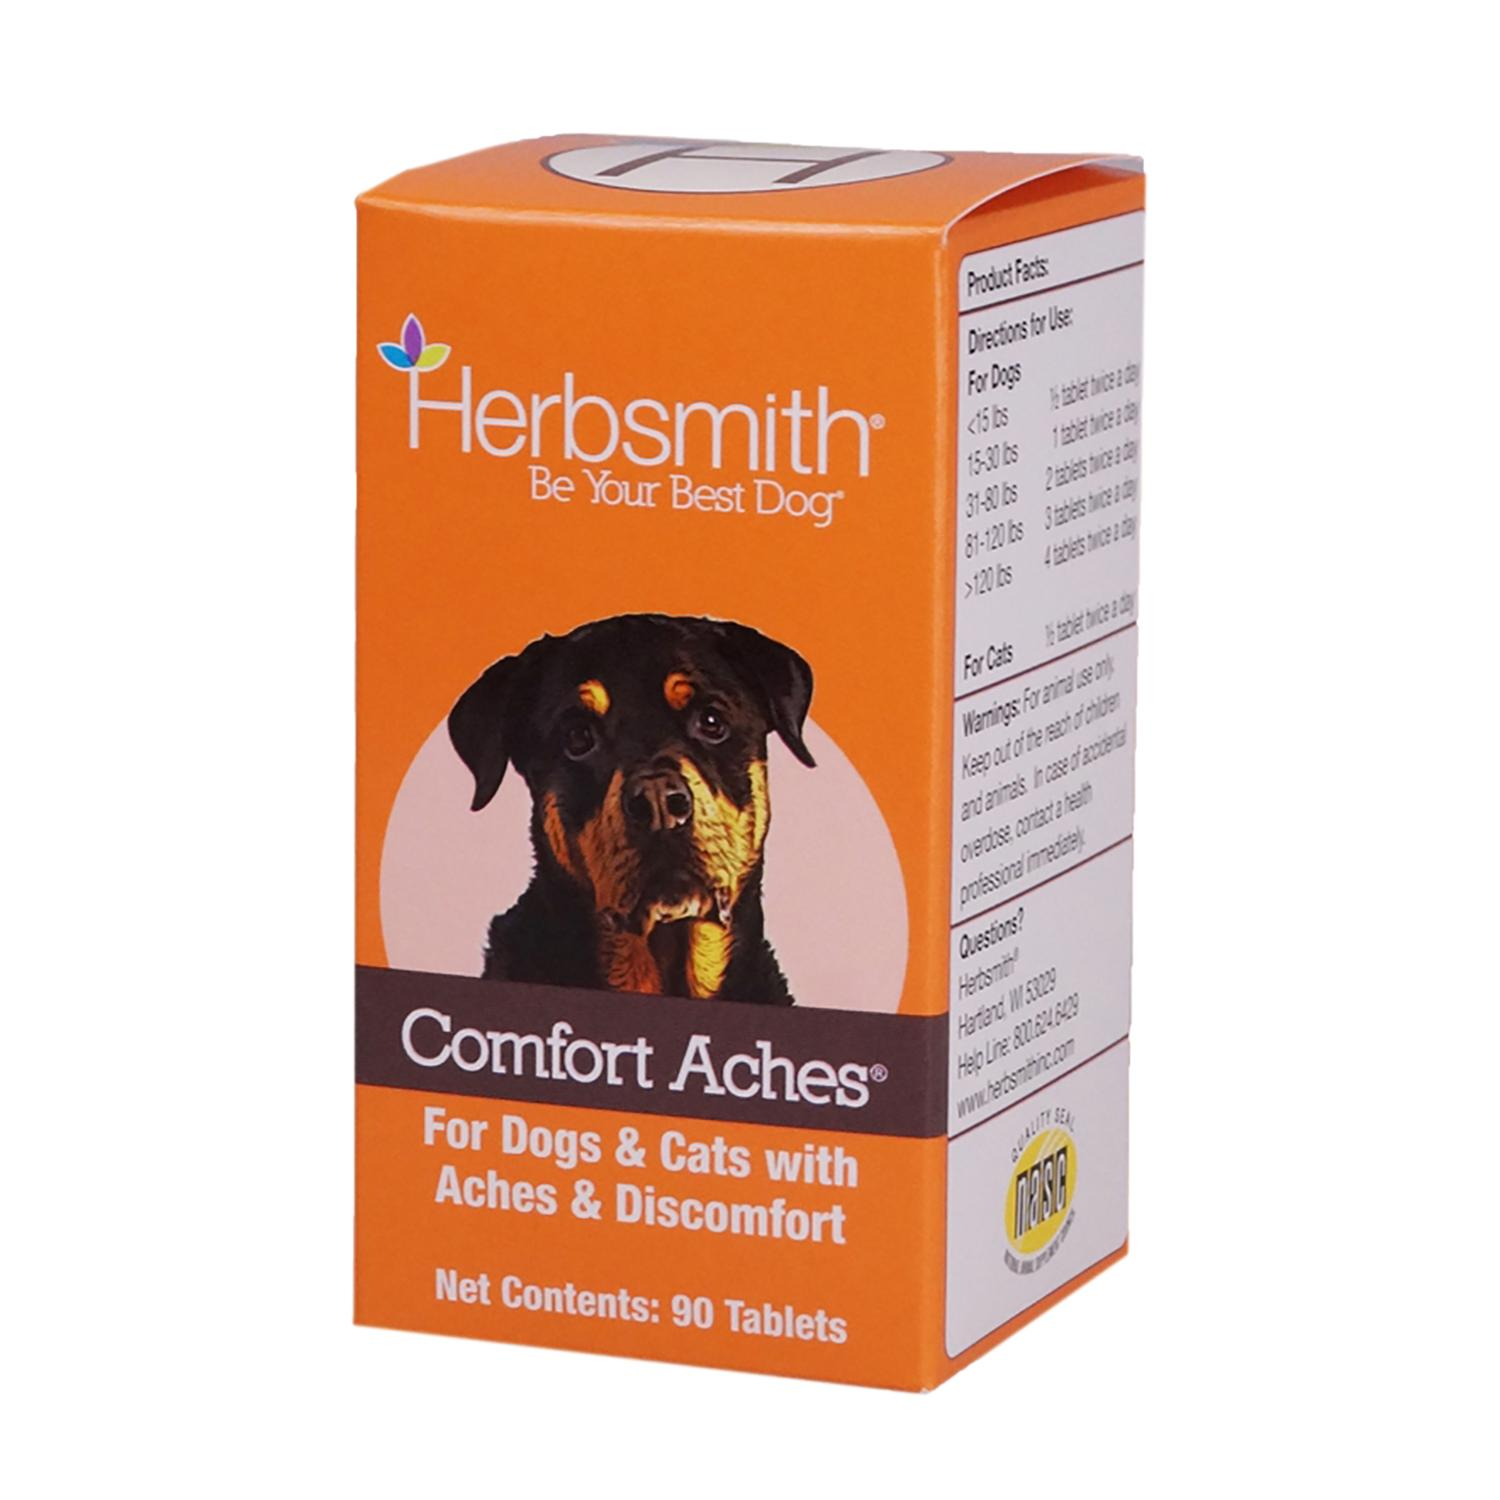 Herbsmith Comfort Aches Pet Supplement